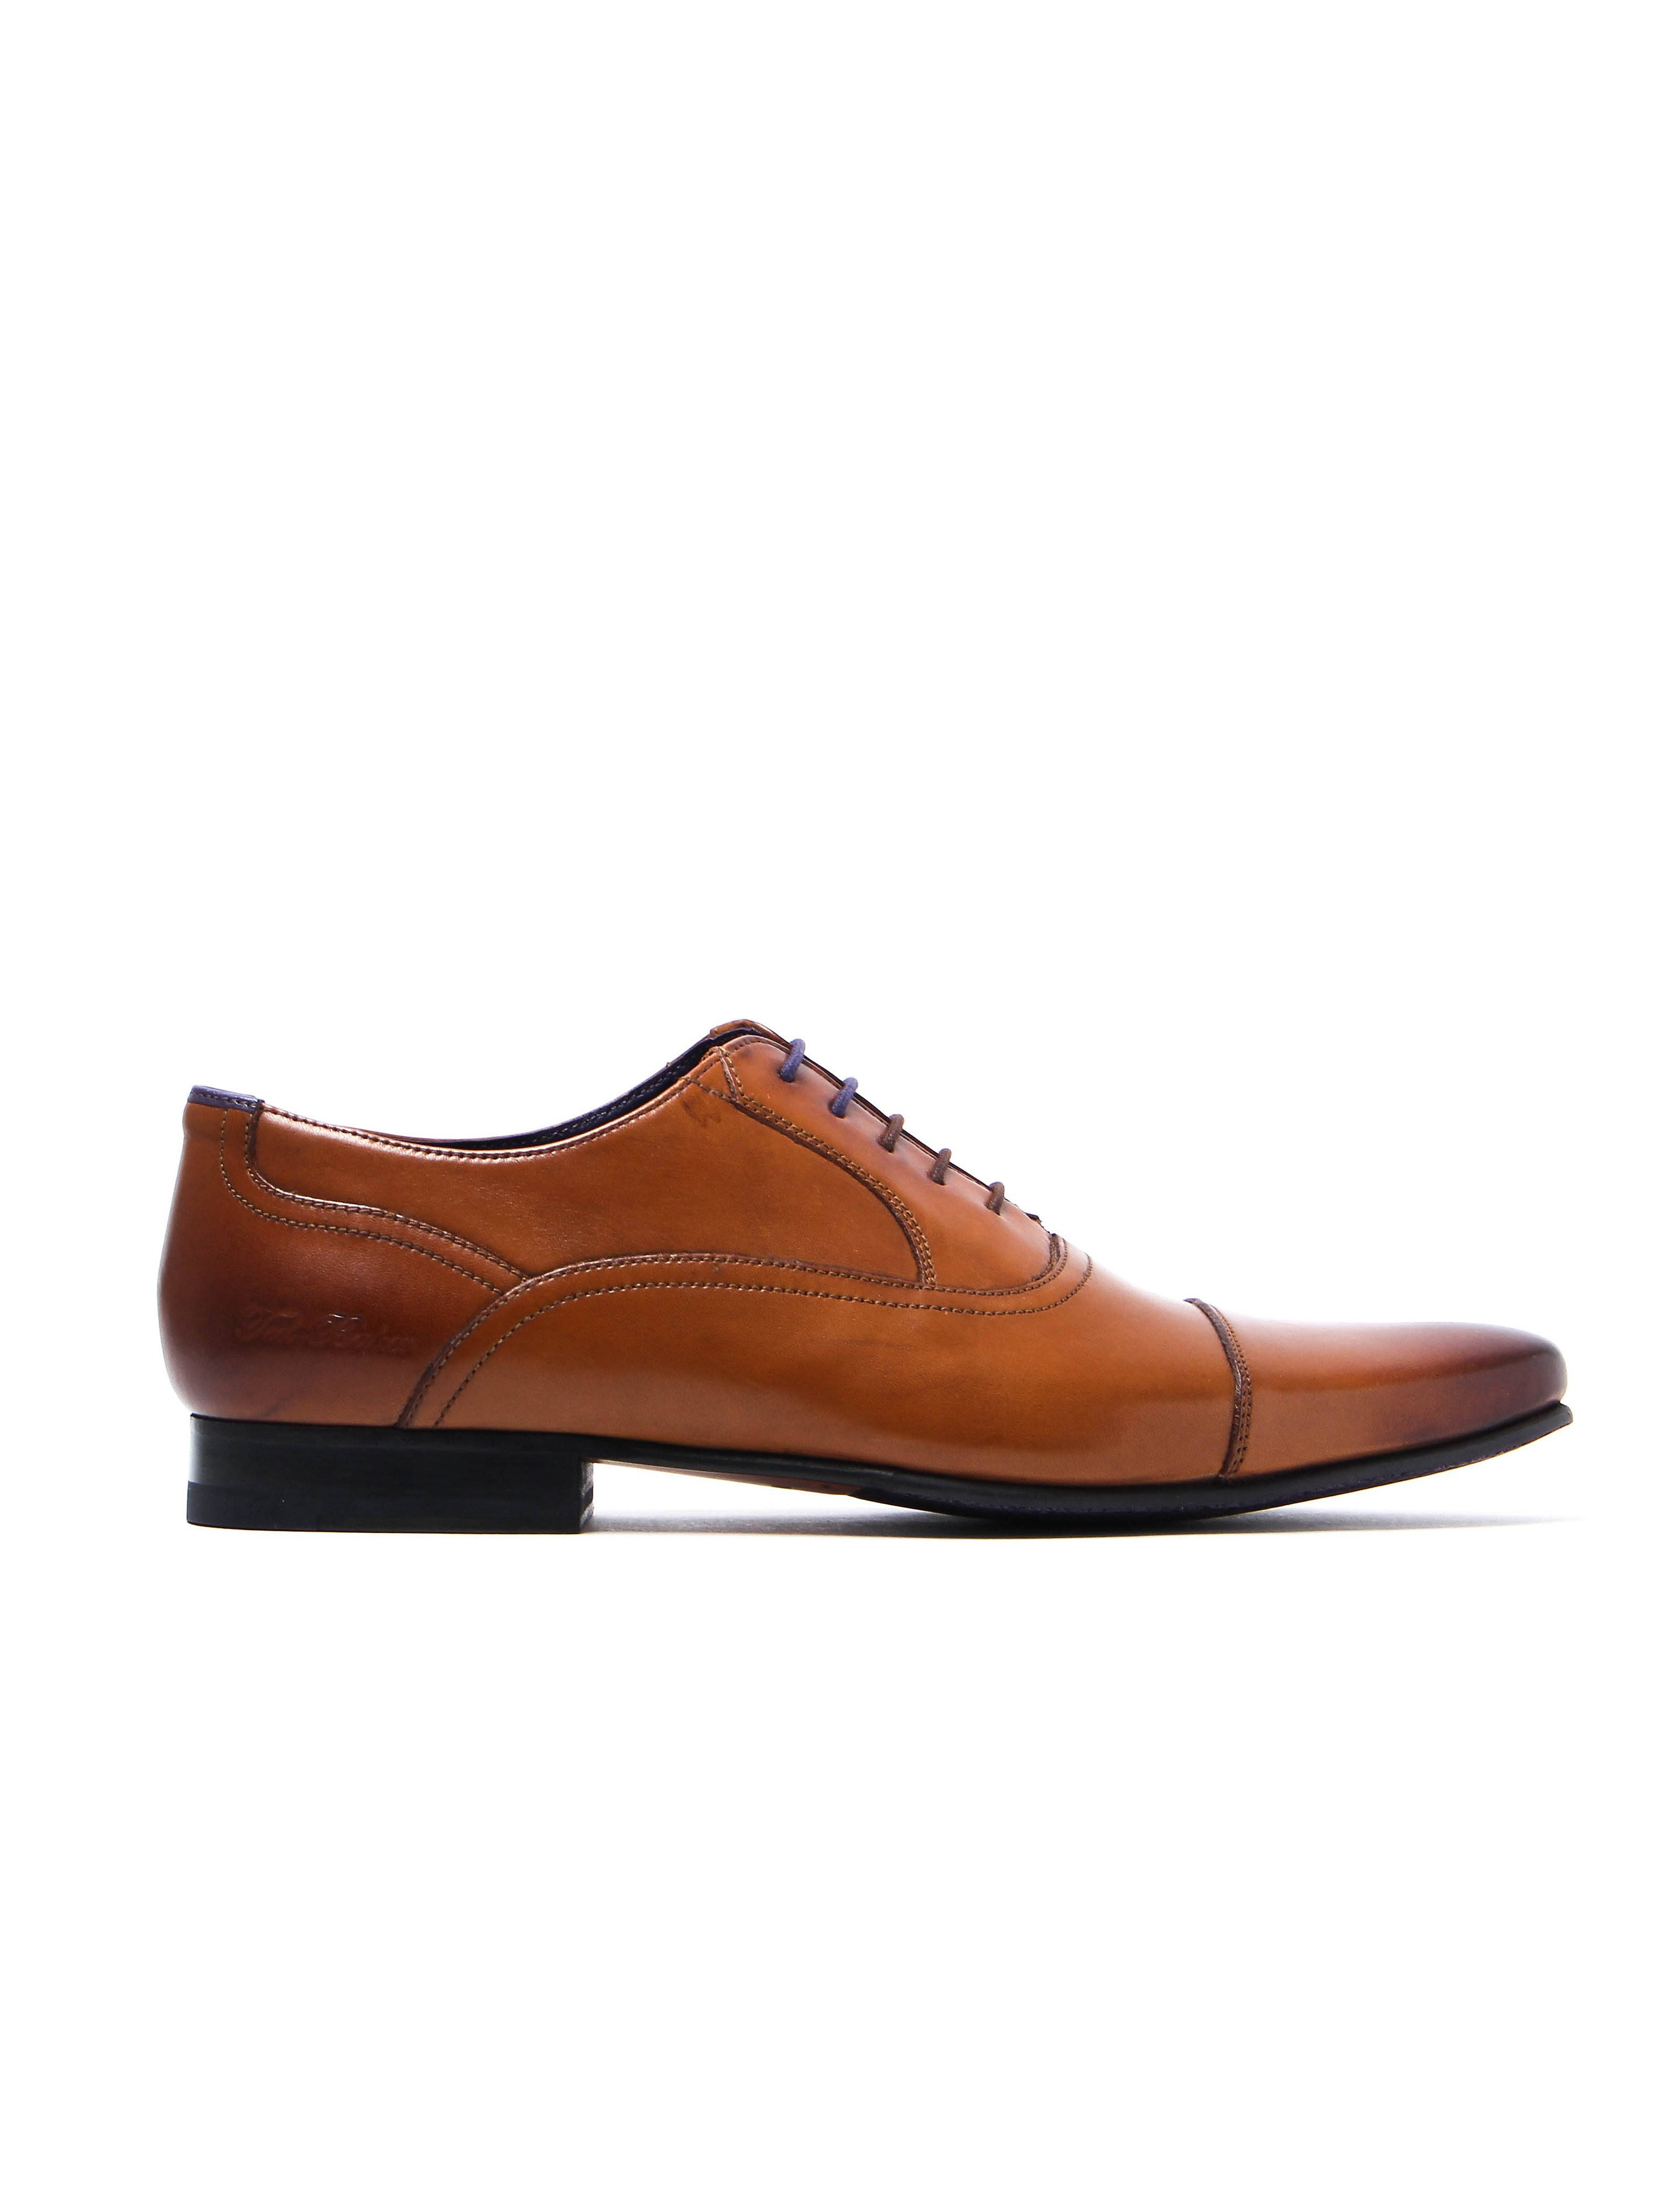 Ted Baker Men's Rogrr 2 Derby Shoes - Tan Leather